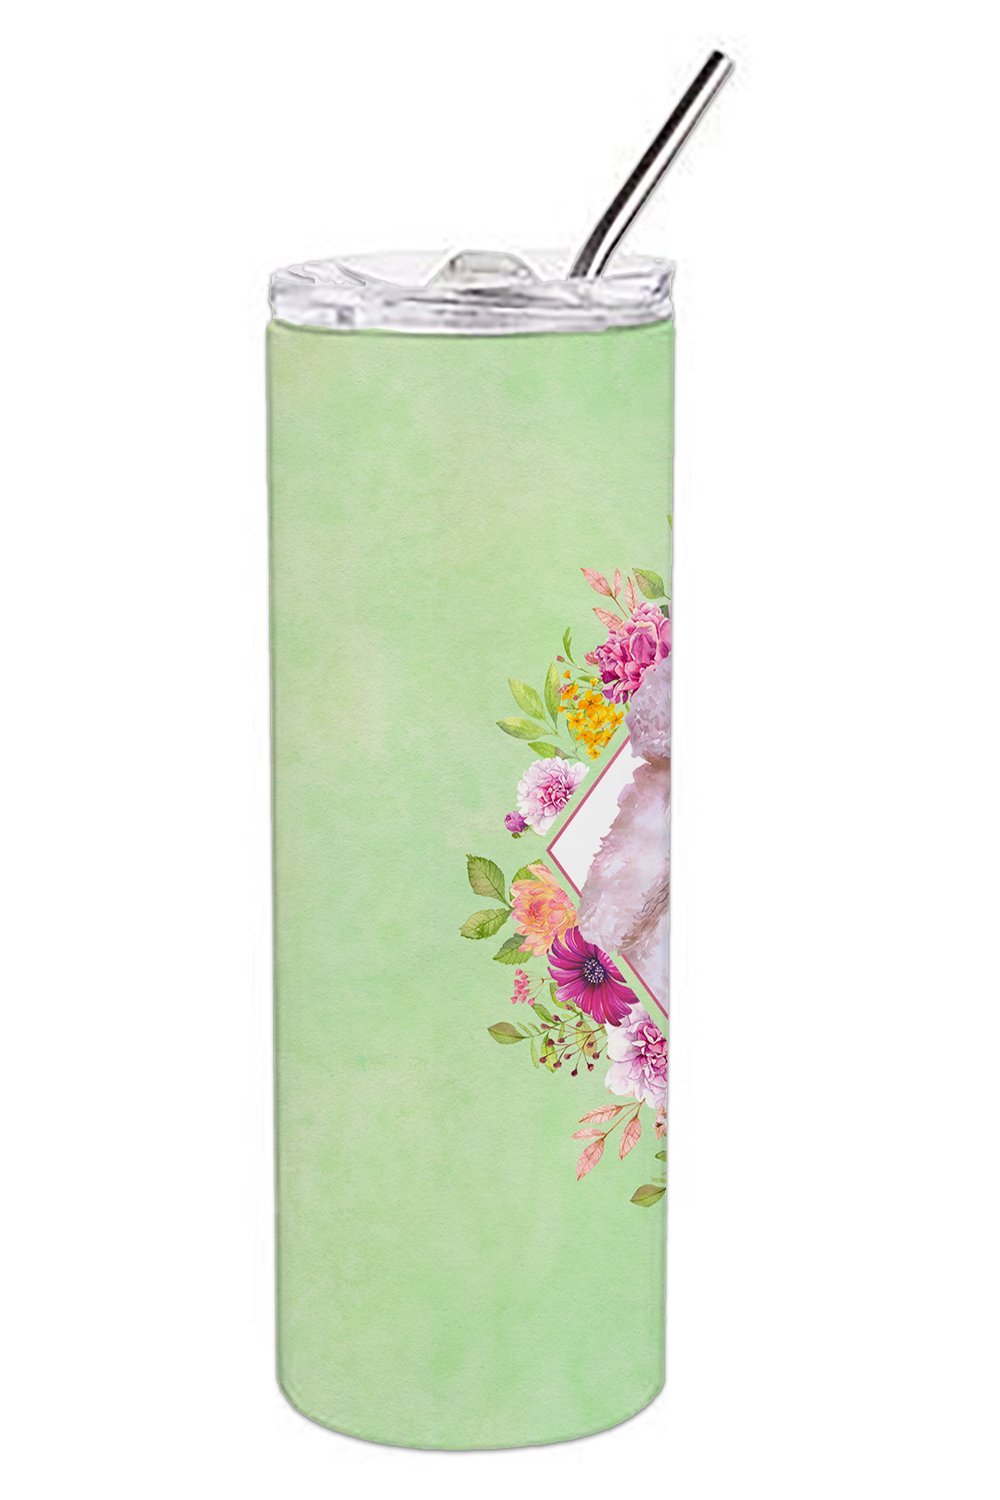 Standard White Poodle Green Flowers Double Walled Stainless Steel 20 oz Skinny Tumbler CK4331TBL20 by Caroline's Treasures